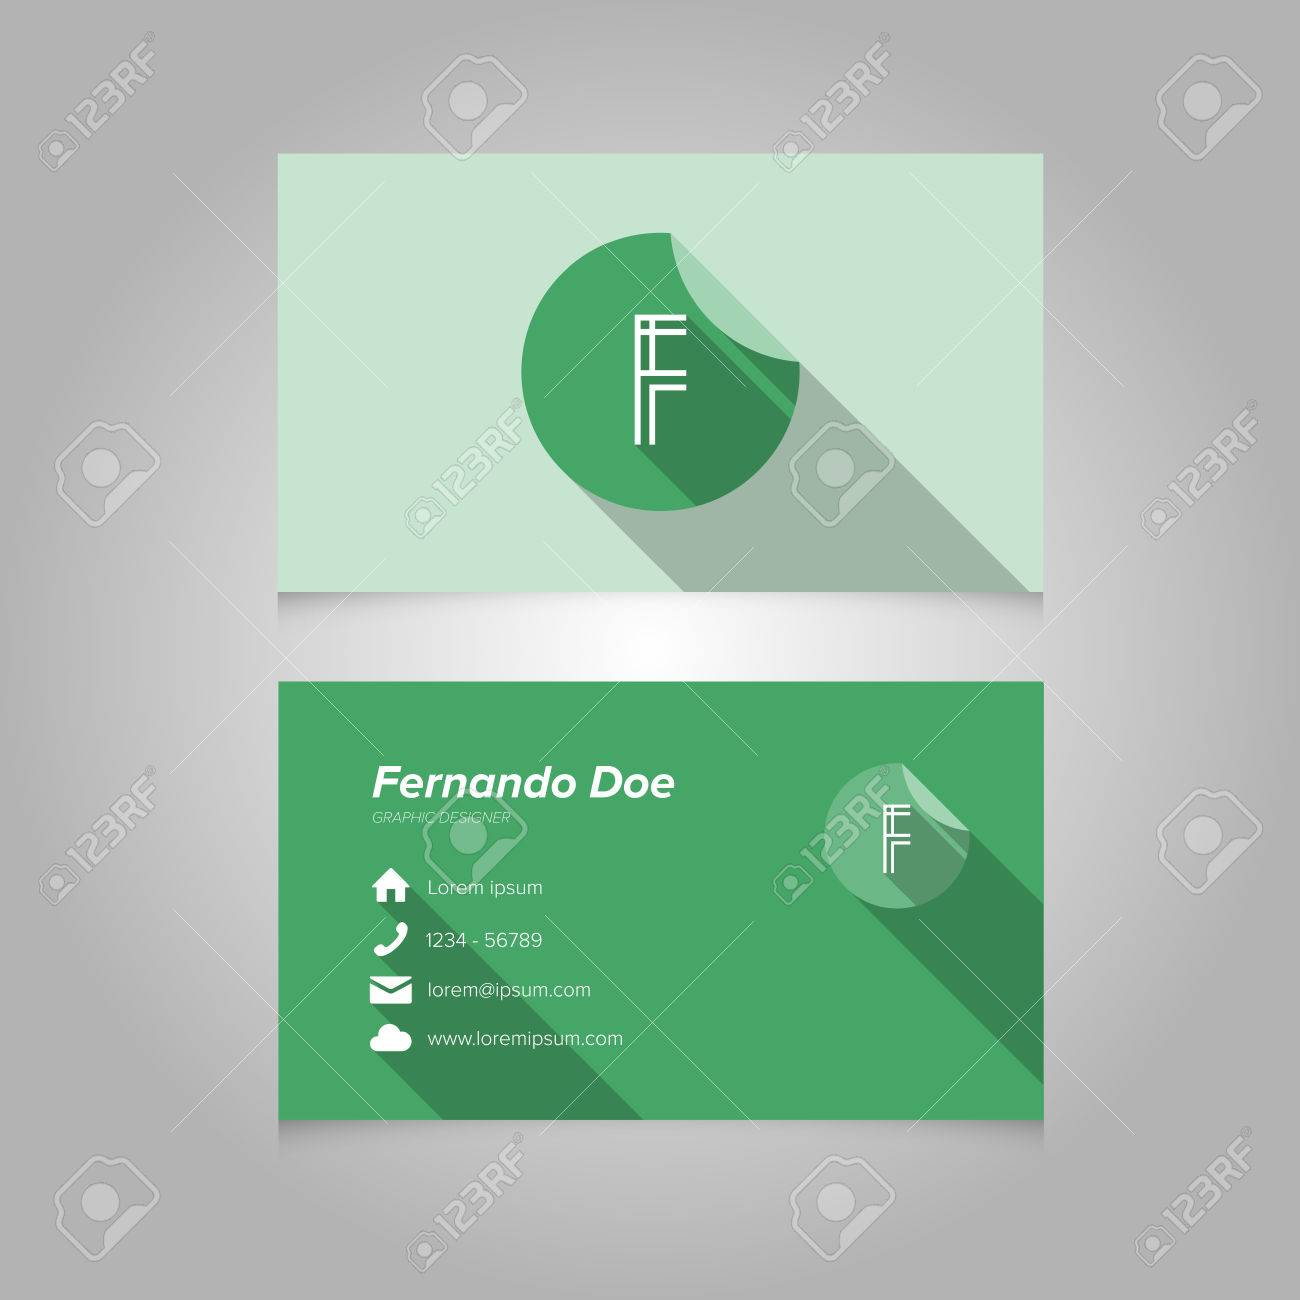 Simple Business Card Template With Alphabet Letter F - Flat Design ...